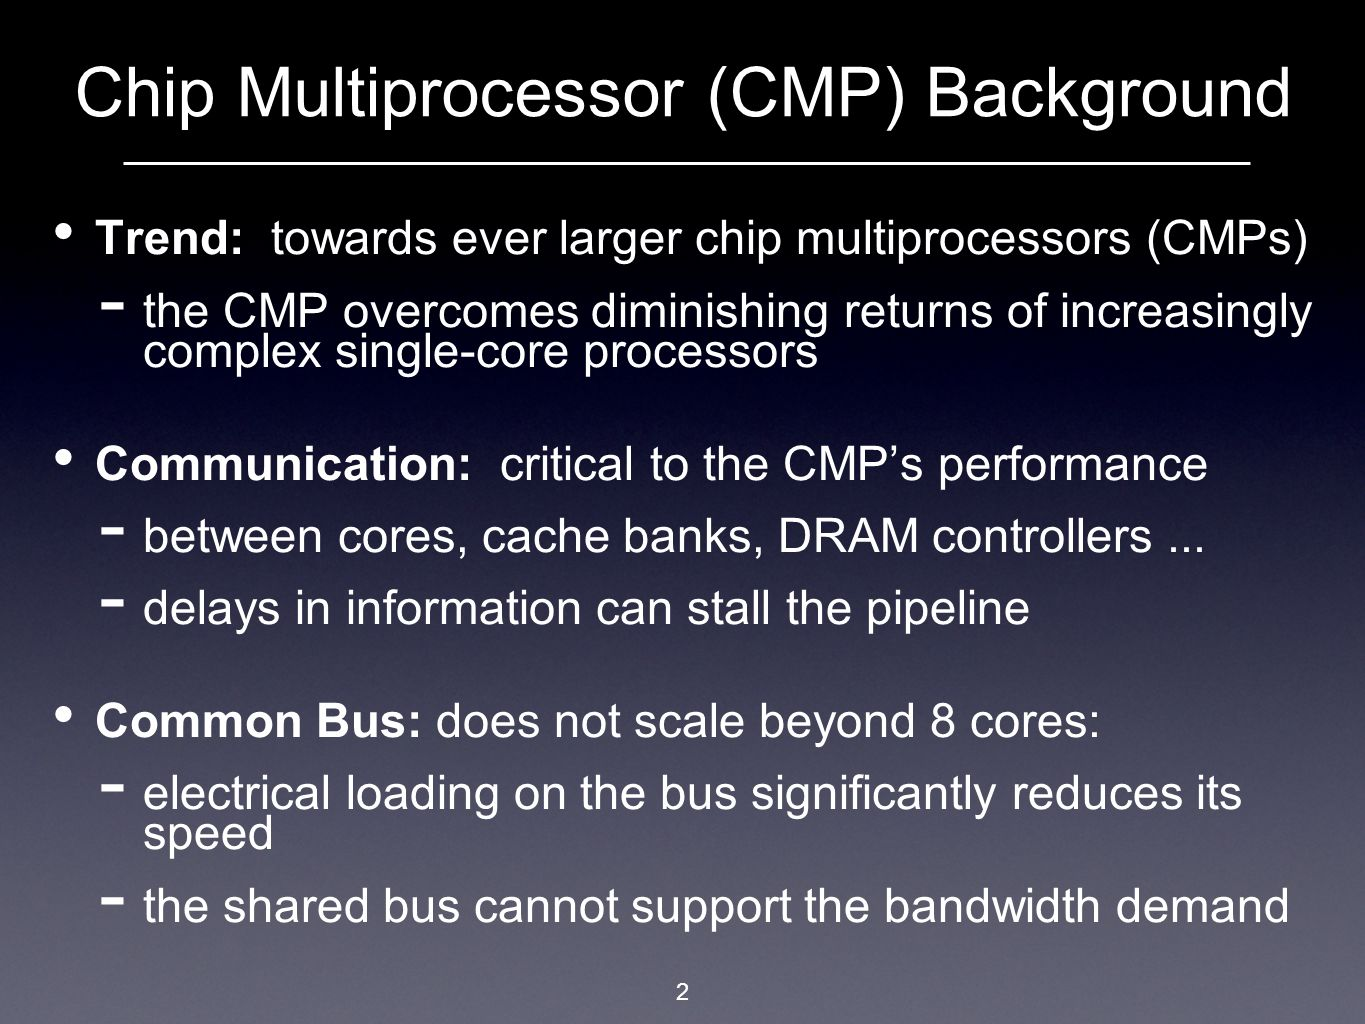 Chip Multiprocessor (CMP) Background